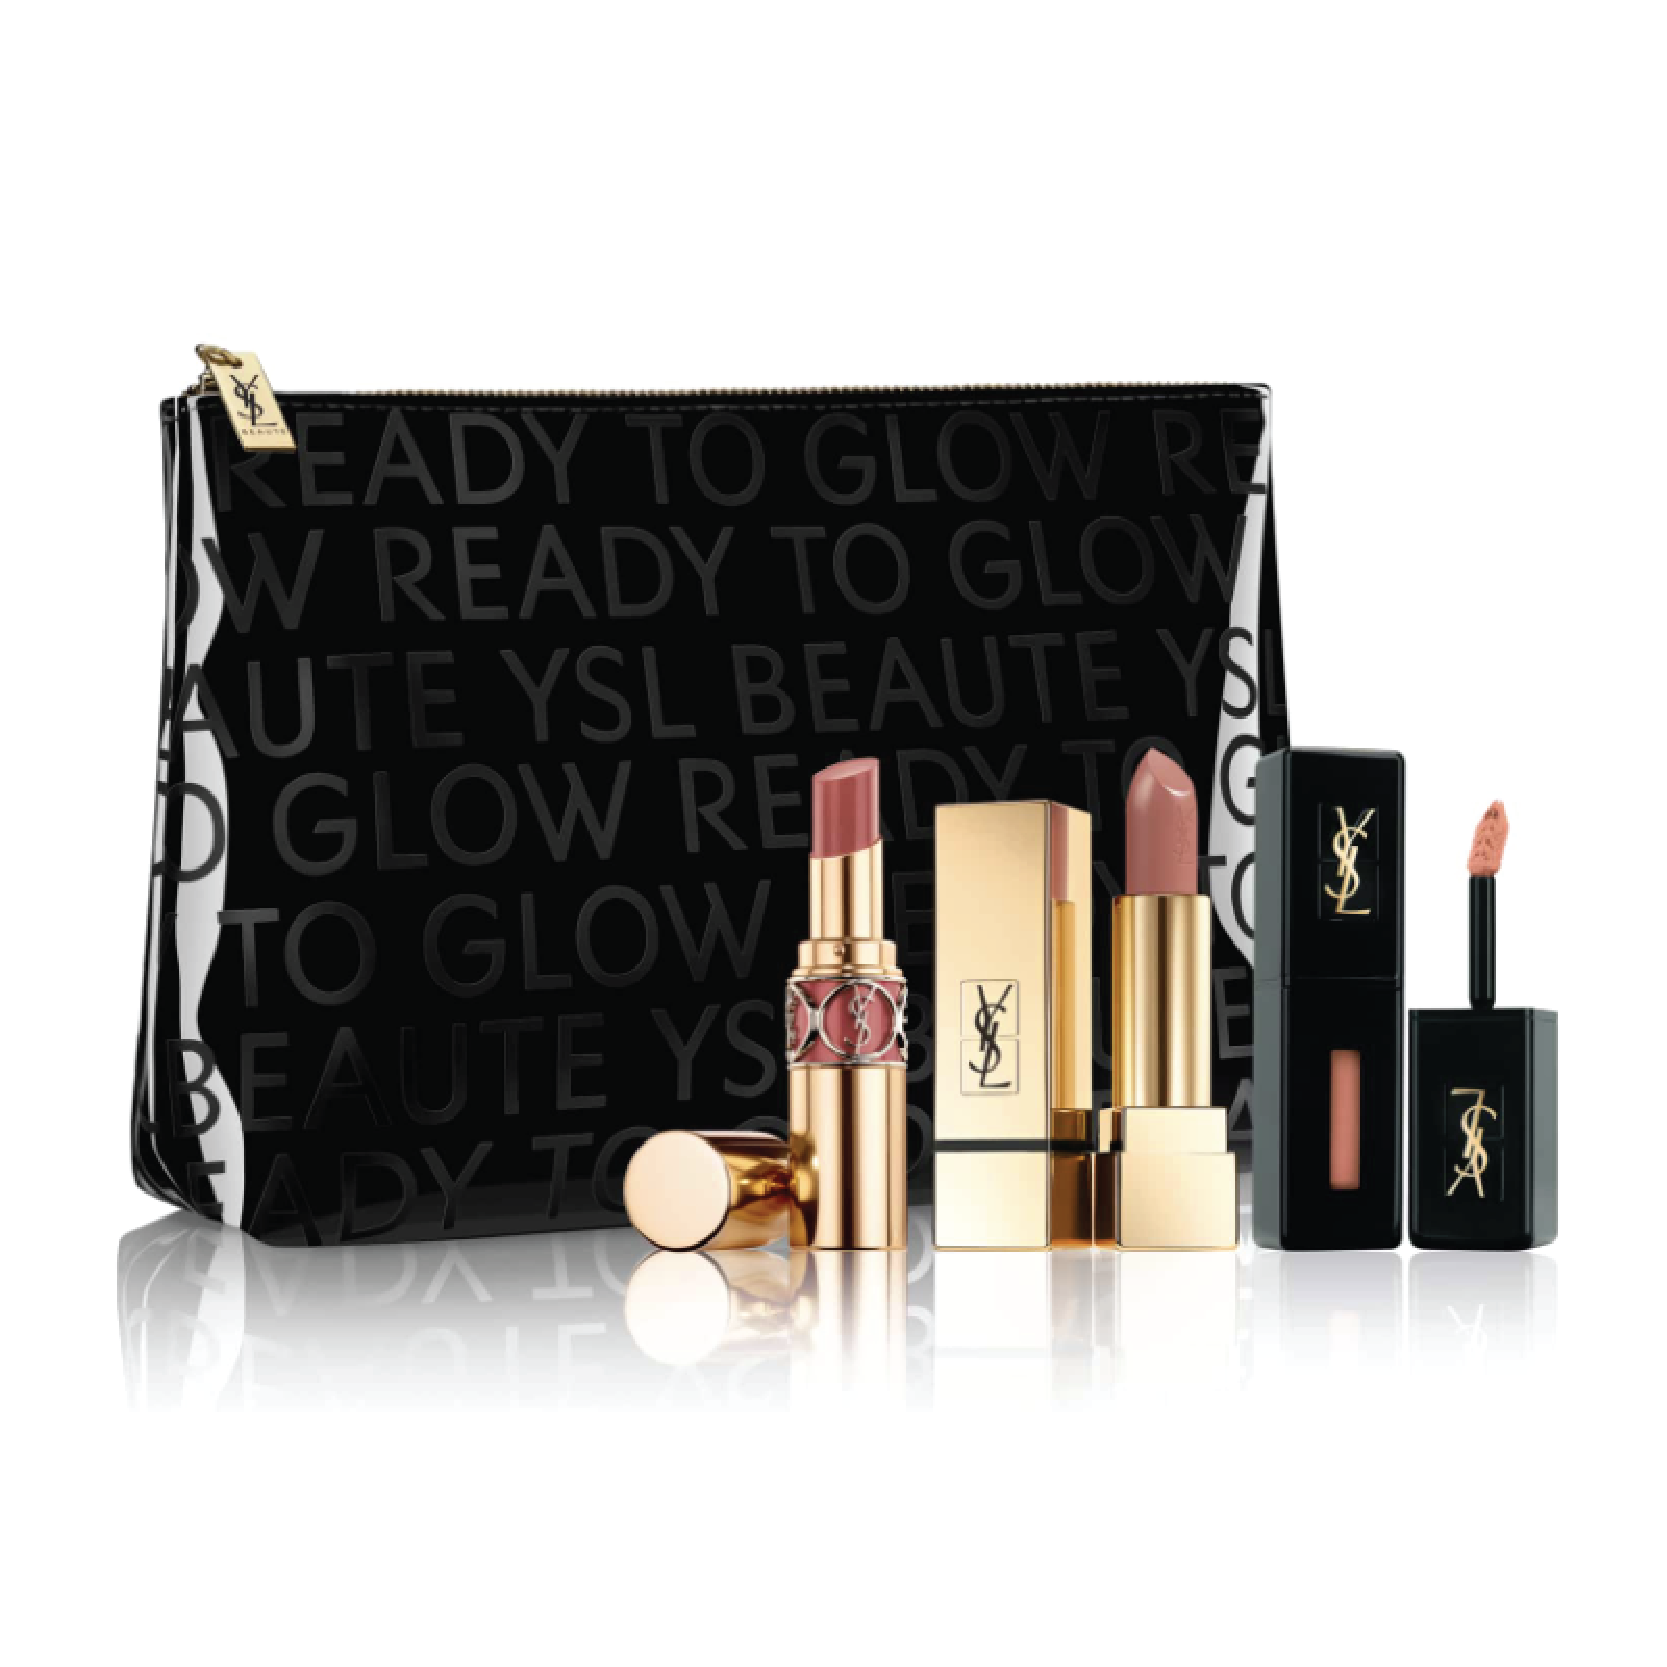 Yves Saint Laurent Nude Edition Lip Set - $74 at NordstromAt under $75, this is a great deal for three full-size nude luxury lipsticks.